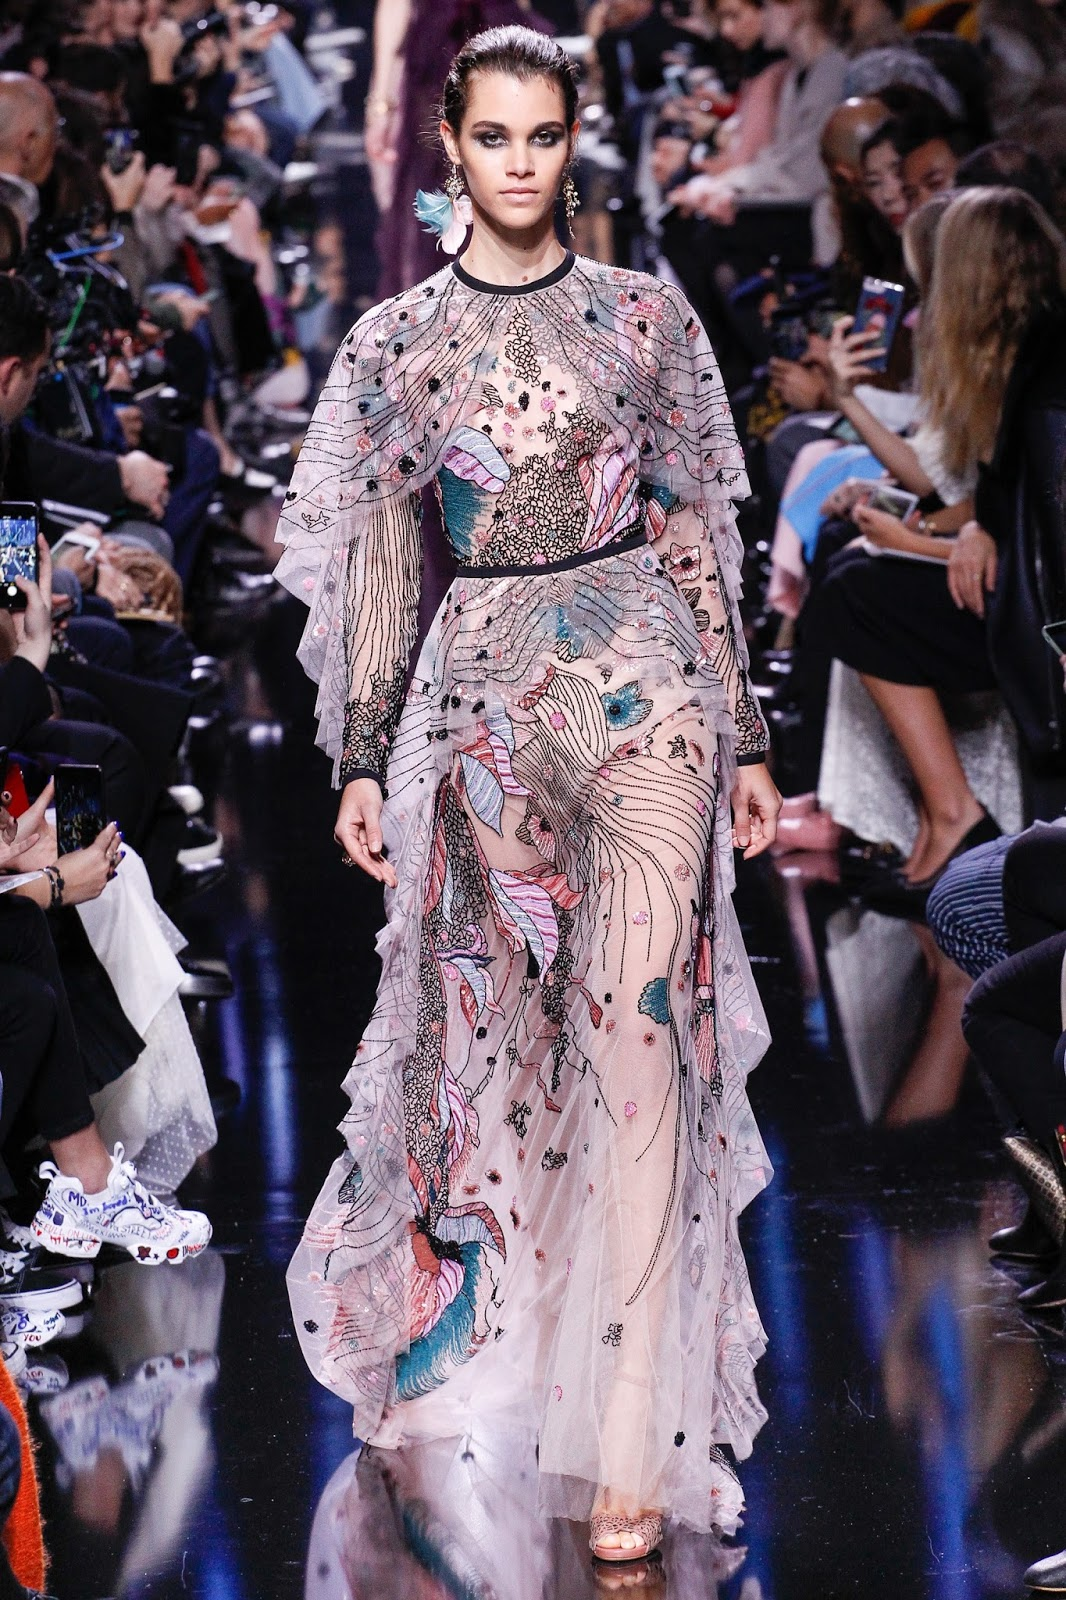 Elie Saab 2017 fall paris fashion week, dress, pretty, poetry in motion